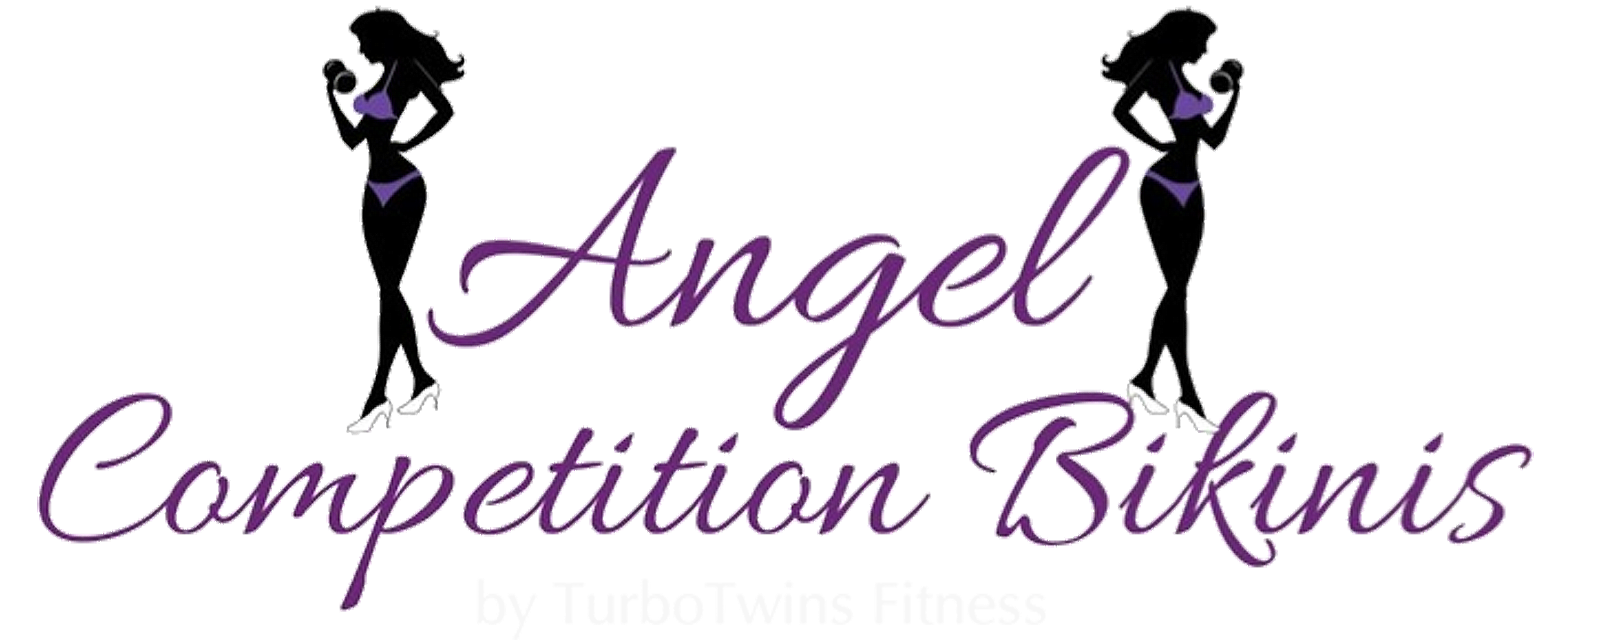 code ANGELMAMA gets you a competition jewelry set with your bikini purchase